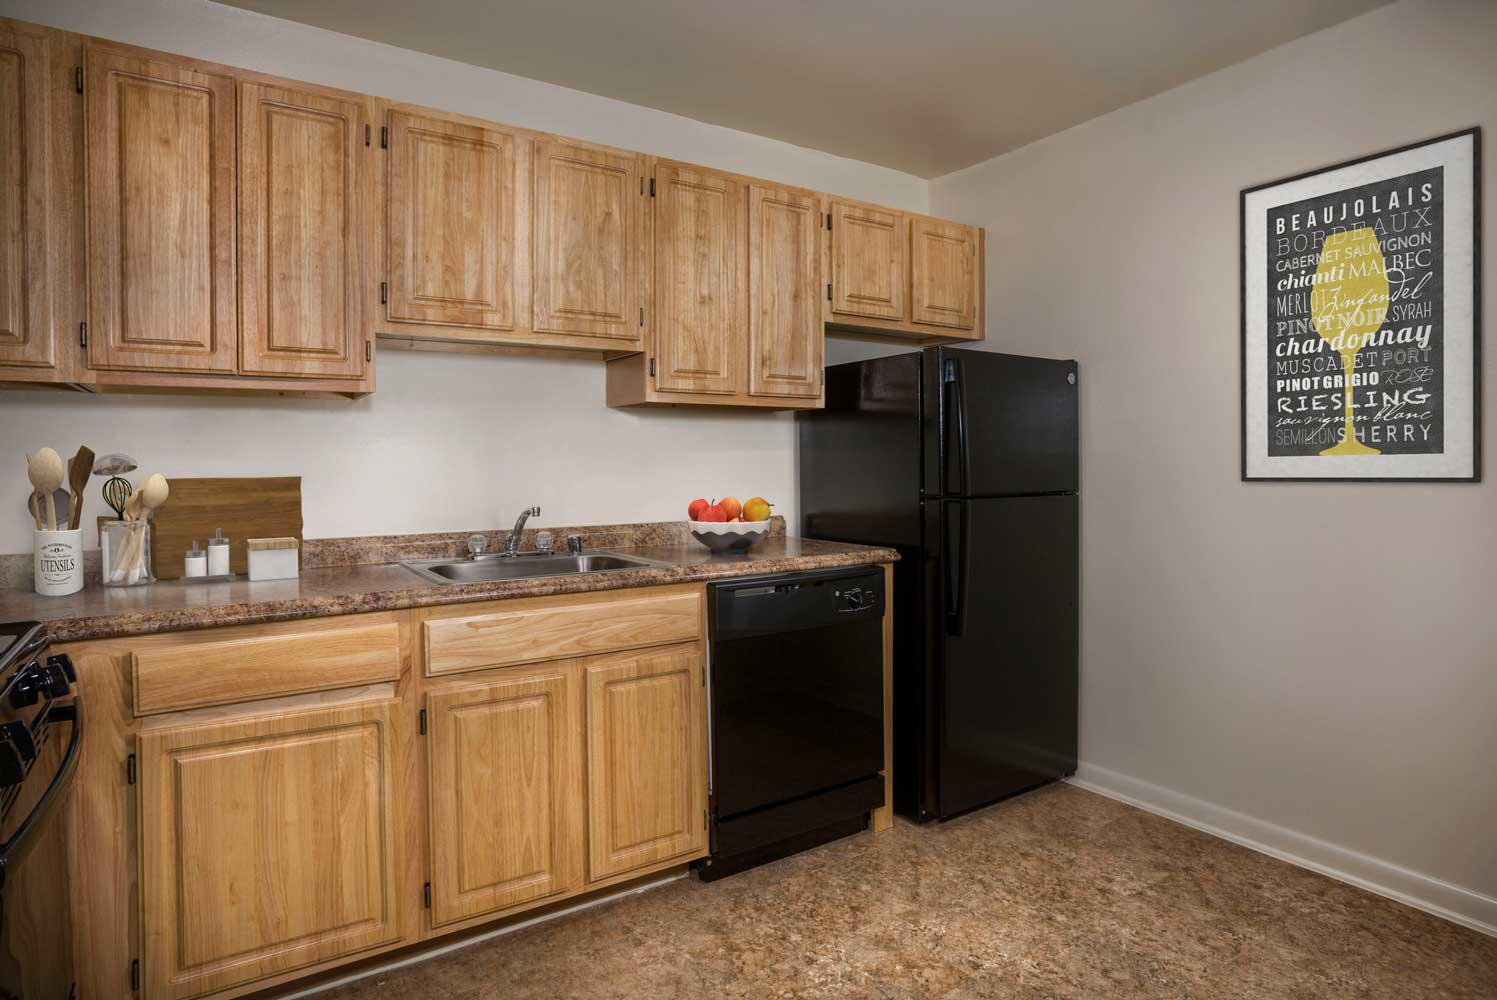 Spacious kitchen at Heritage Square Apartments (dishwasher in select homes)